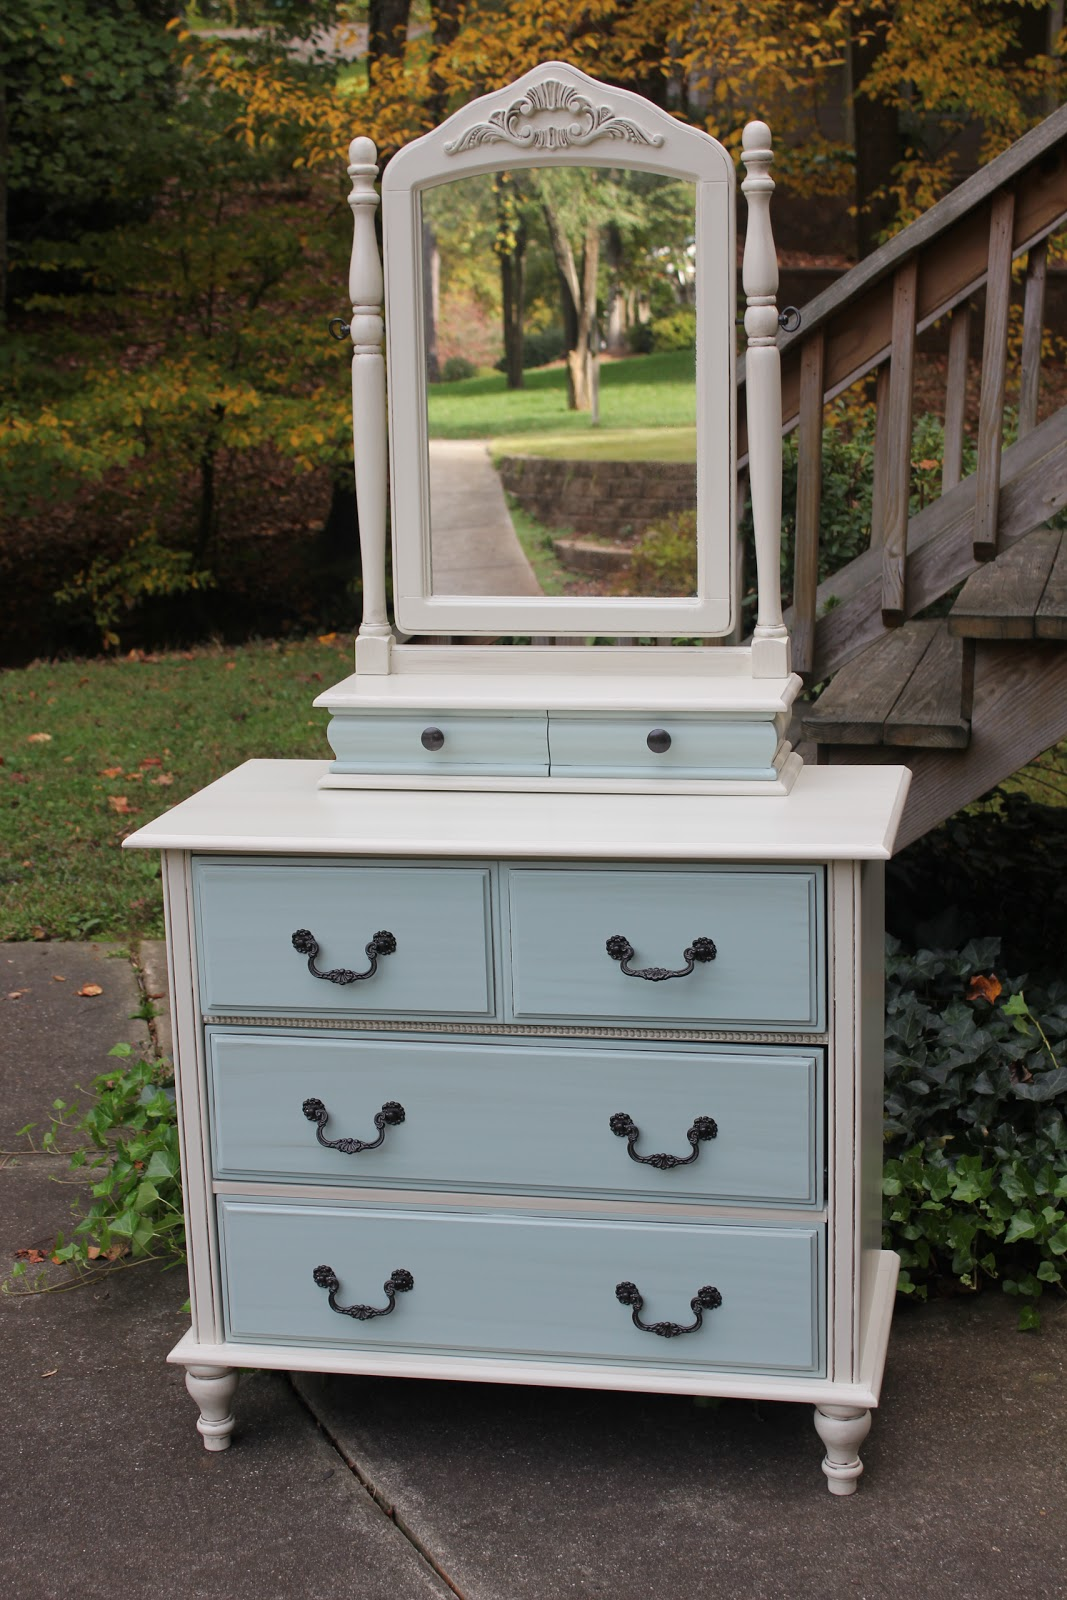 Sold Adorable Little Dresser With Mirror Went From A Drab Solid White To Shabby Chic Look Painted In My Favorite Pottery Barn Color Called Jute